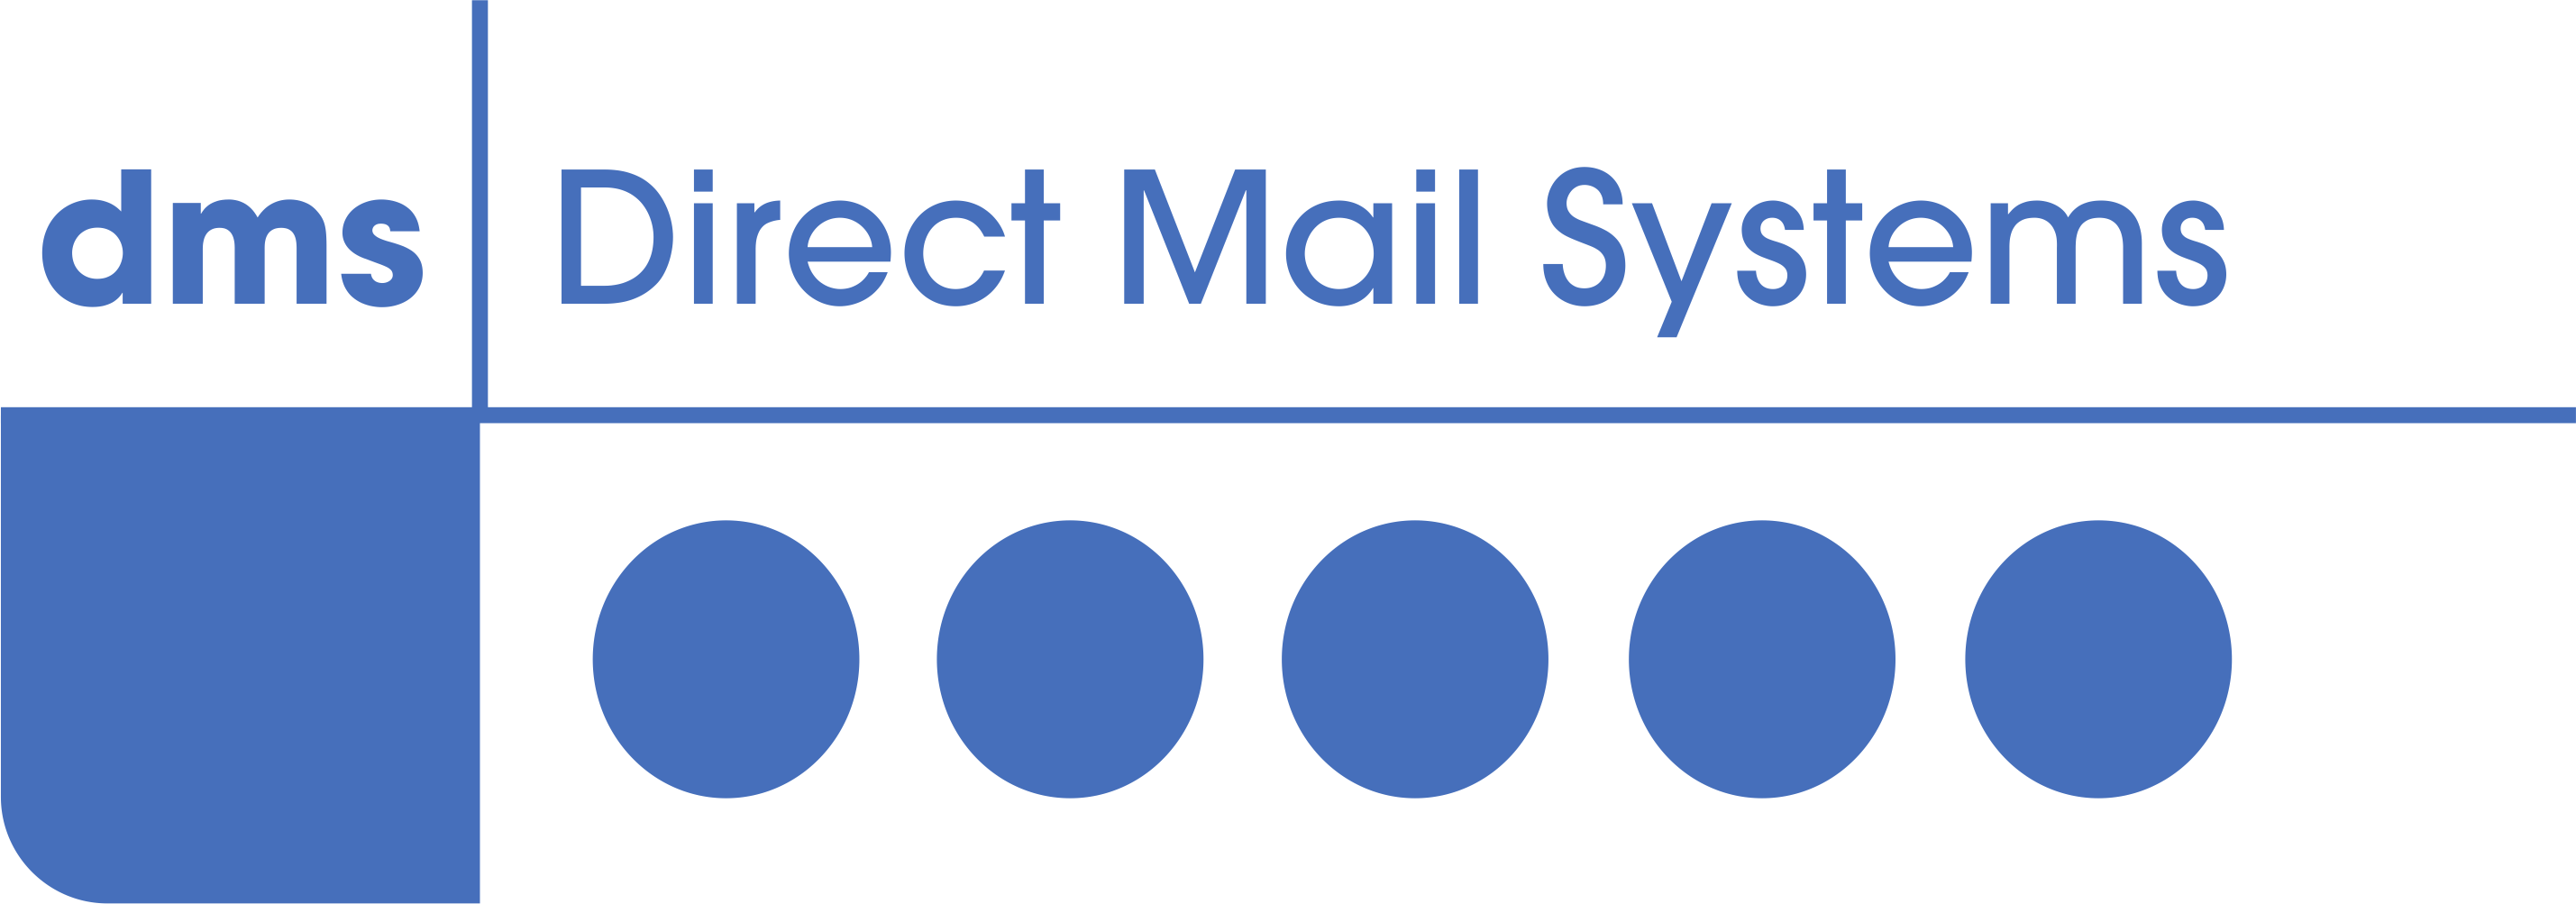 direct mail systems logo